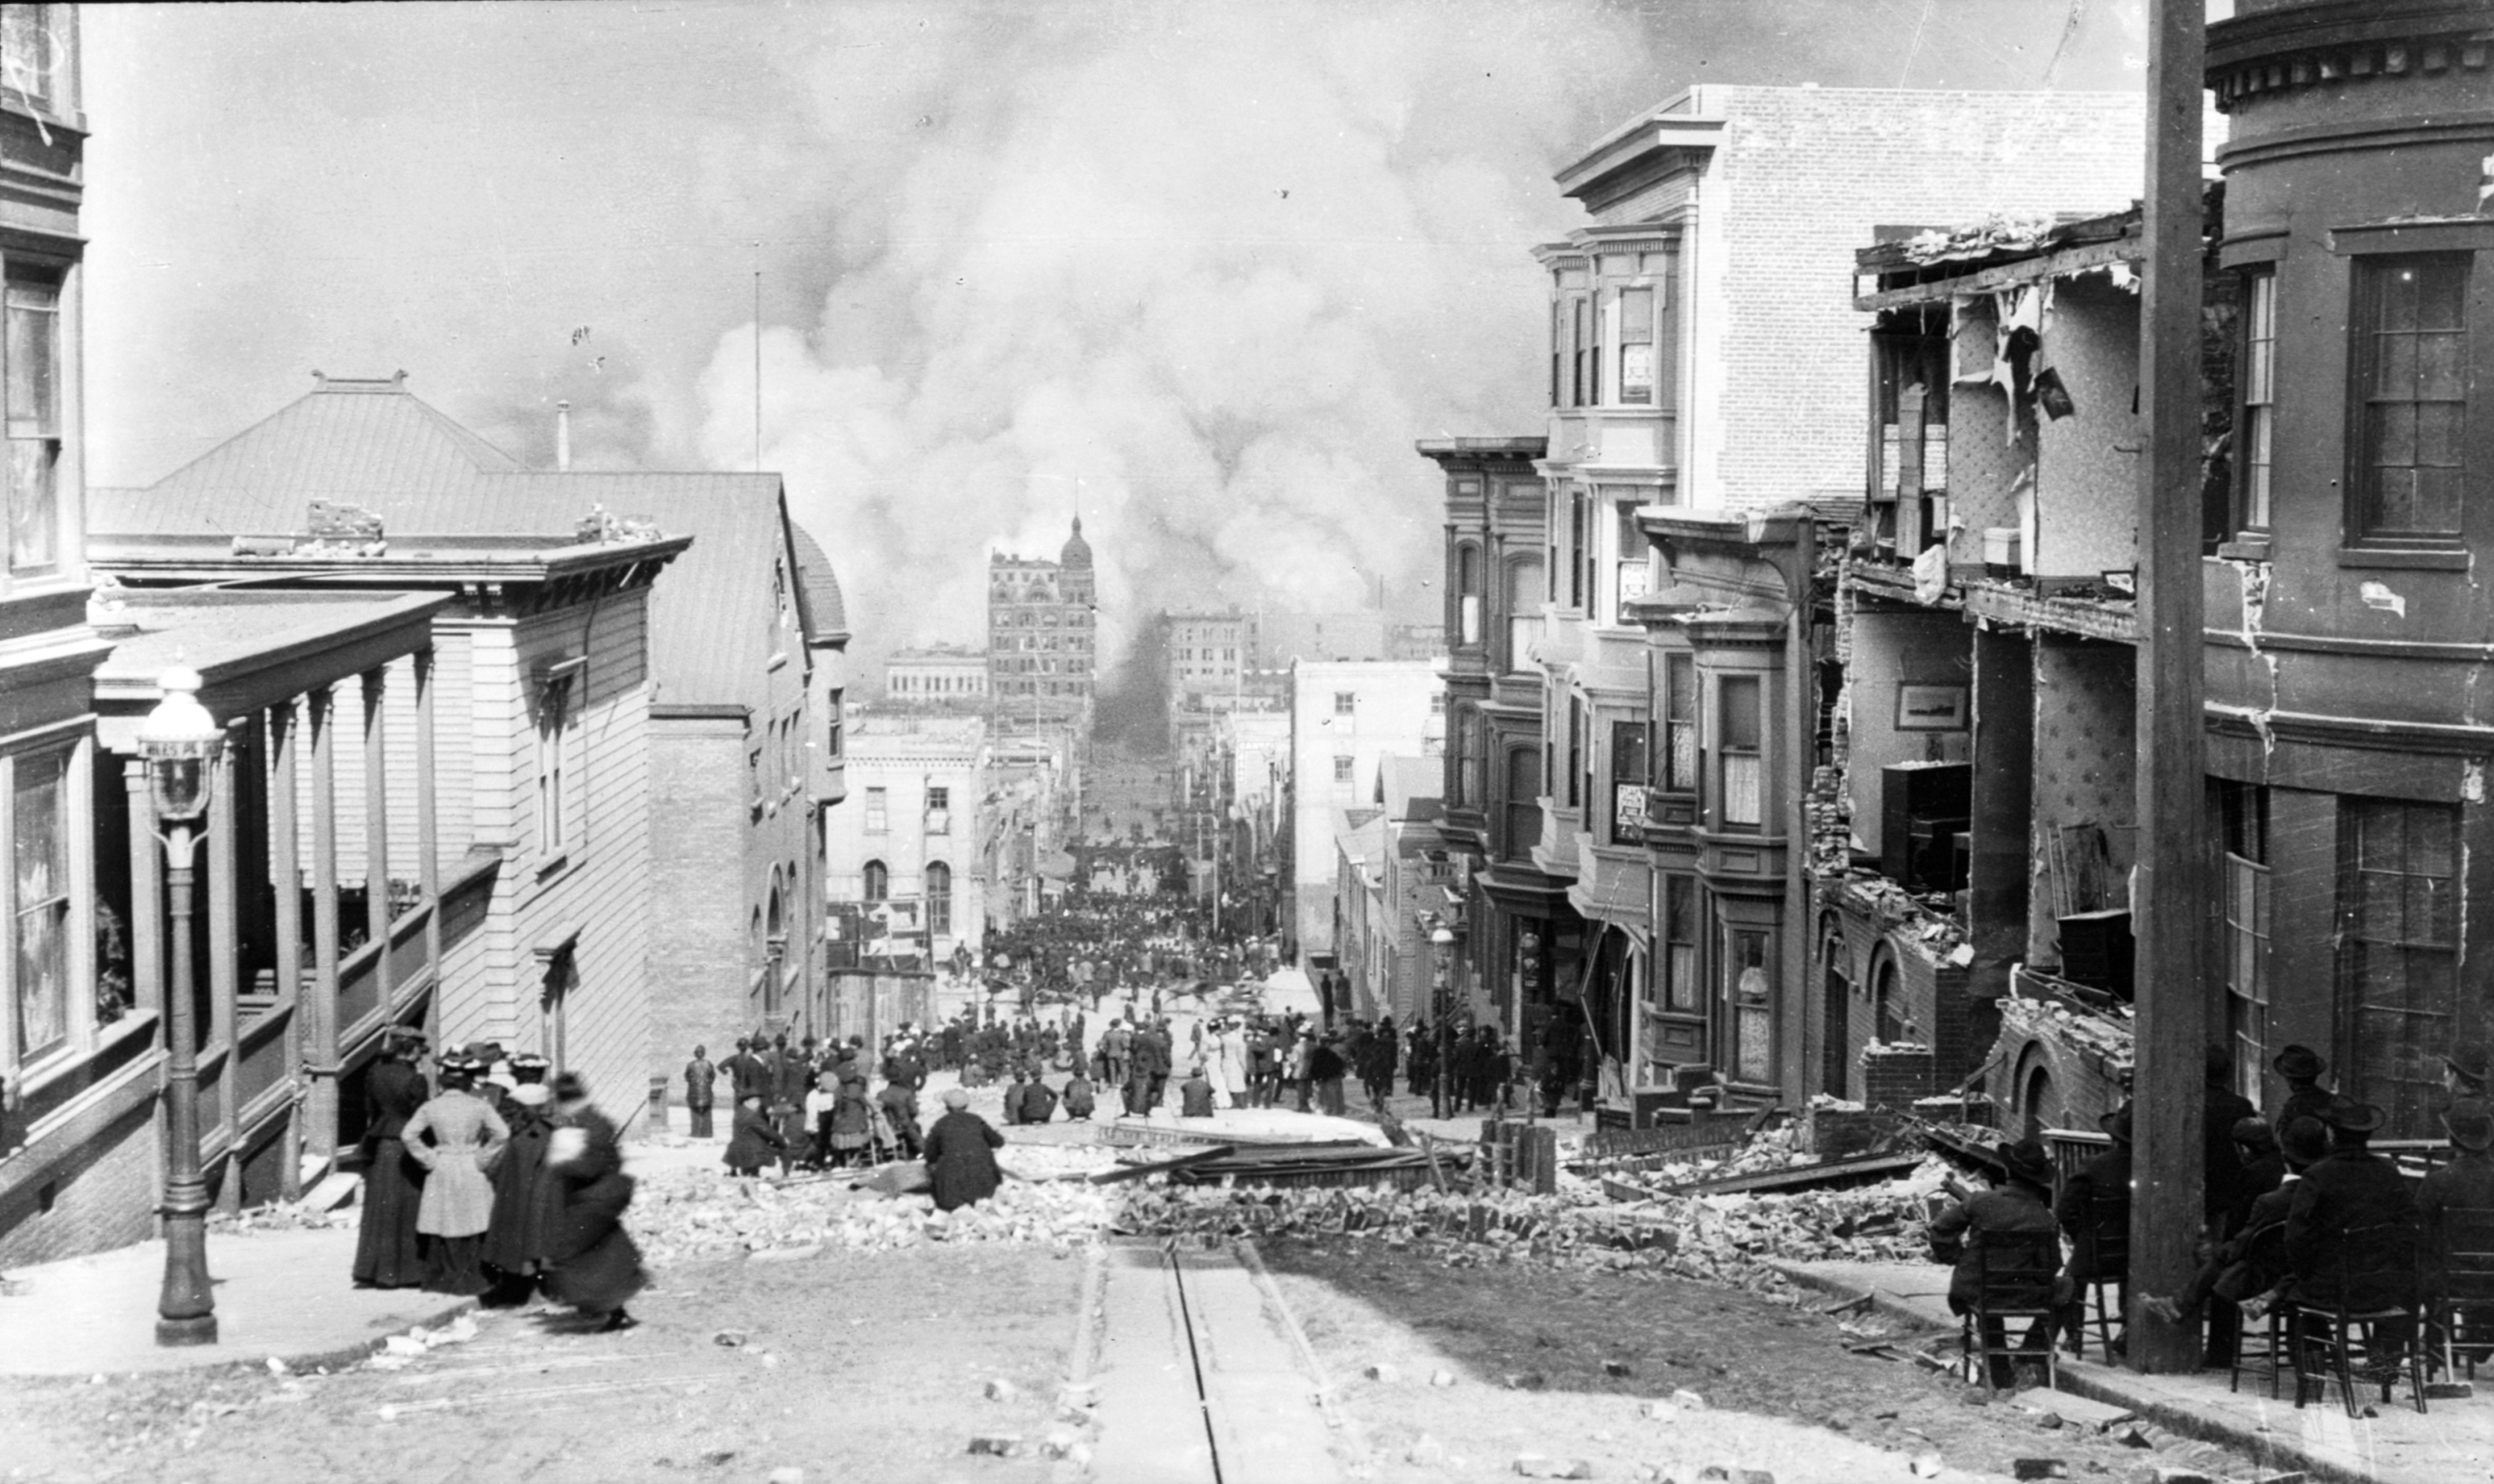 Terremoto de San Francisco de 1906. (Foto: US Library of Congress)